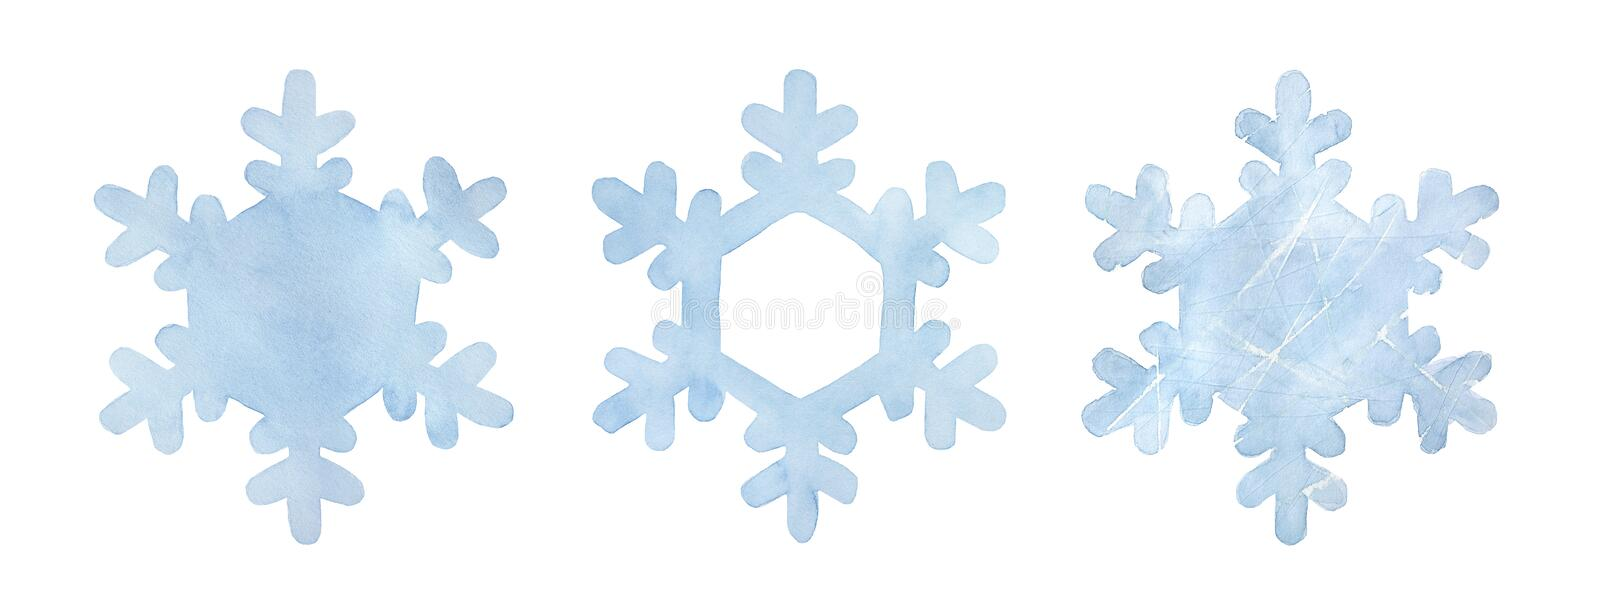 Light blue snowflake collection. Three variations of one shape. Symbol of winter, Xmas, New Year holidays. Hand painted water color drawing on white, cut out stock illustration